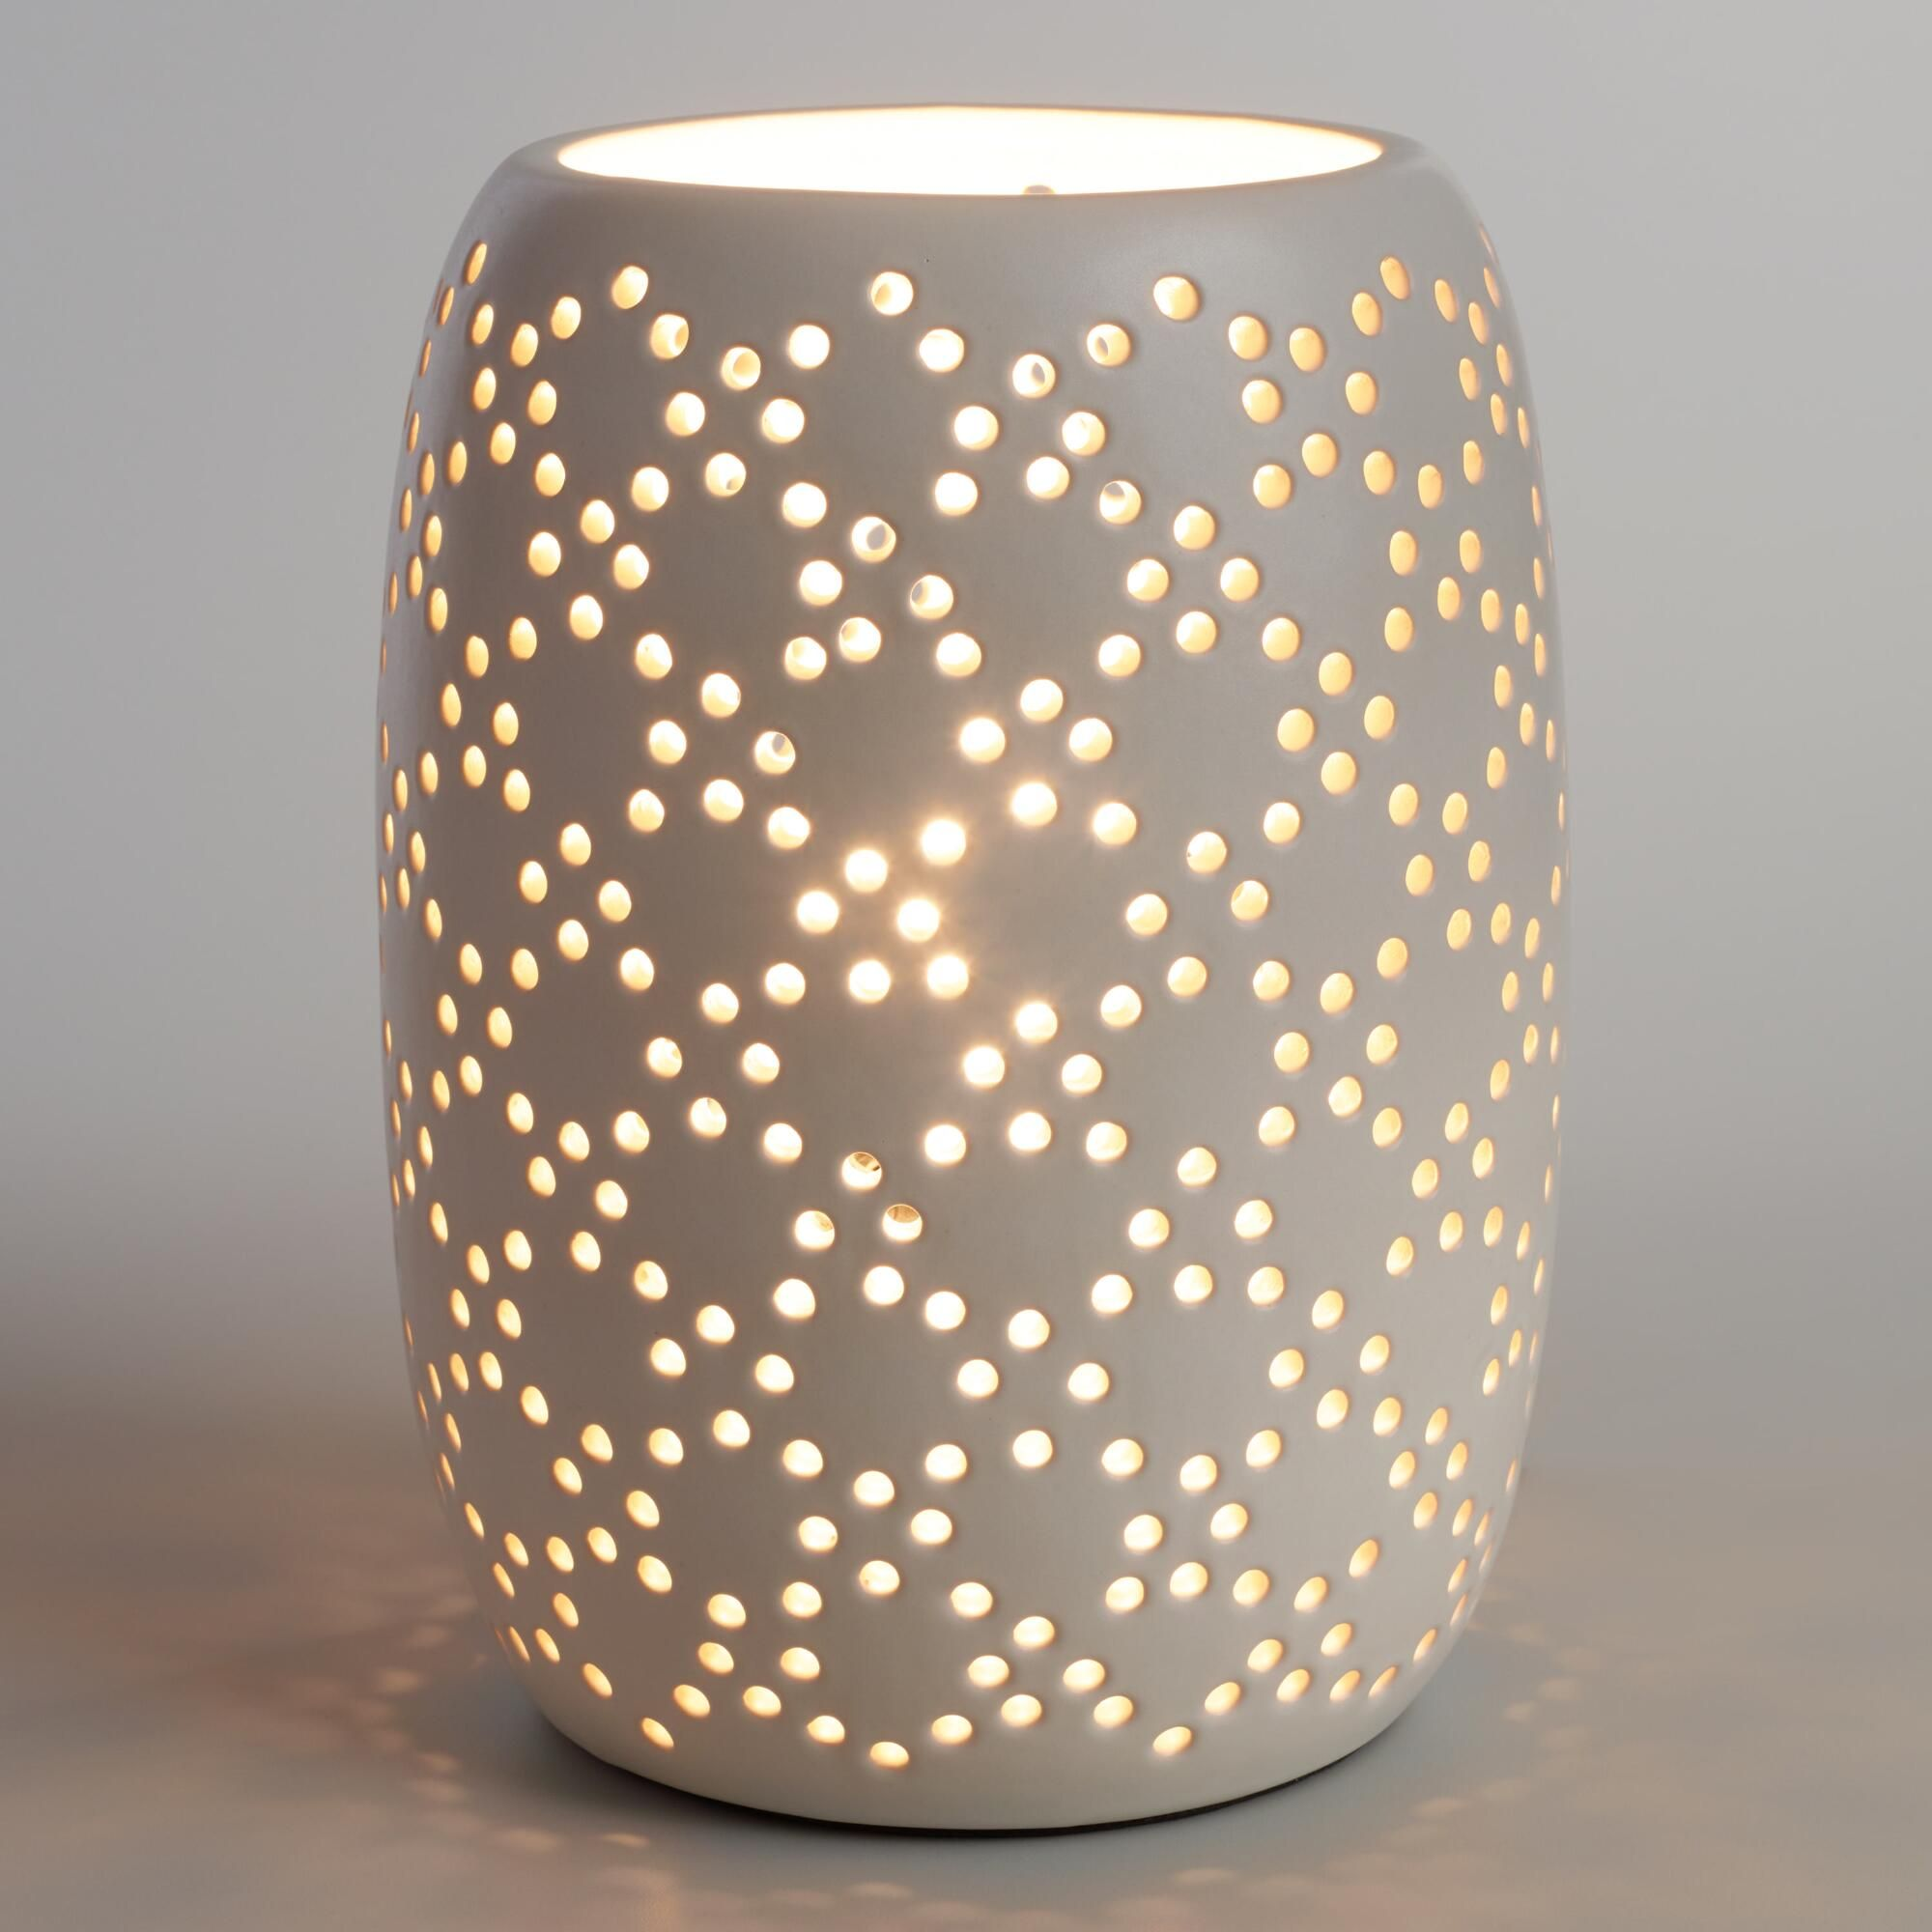 Crafted of white ceramic with a cylindrical silhouette our crafted of white ceramic with a cylindrical silhouette our exclusive table lamp features a perforated mozeypictures Image collections